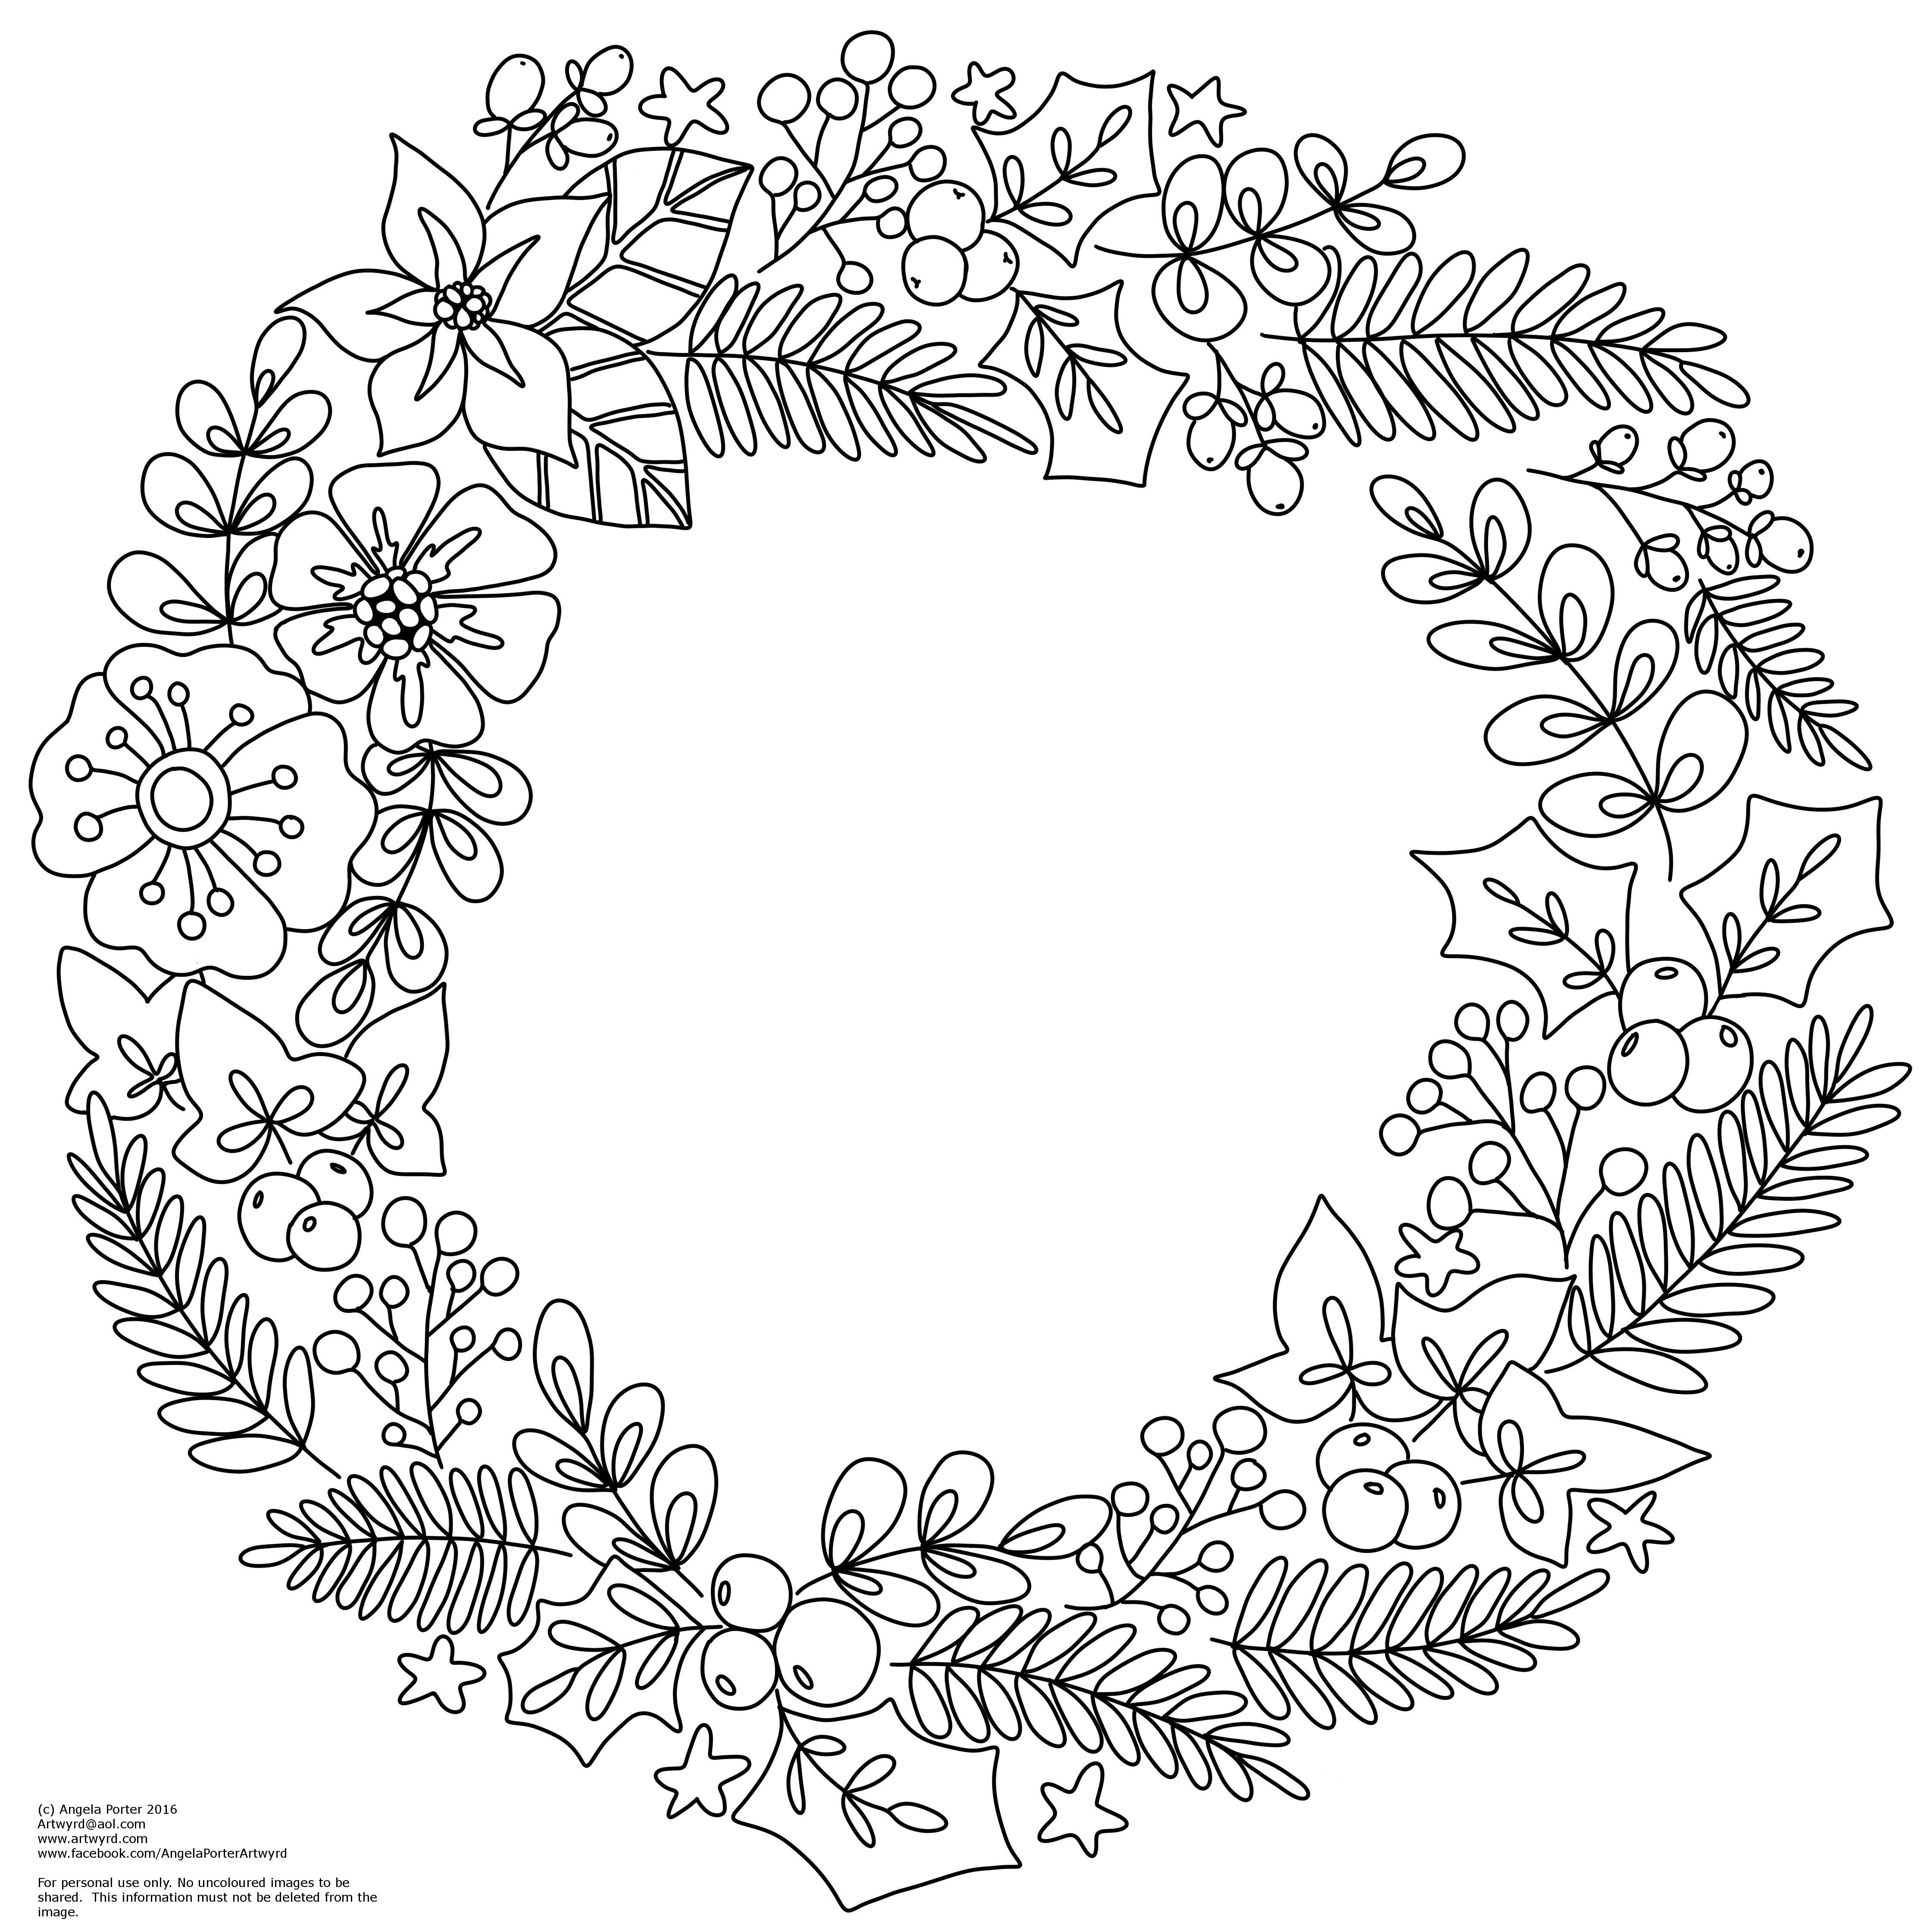 coloring christmas wreath template coloring pages wreaths coloring pages free and printable christmas wreath template coloring